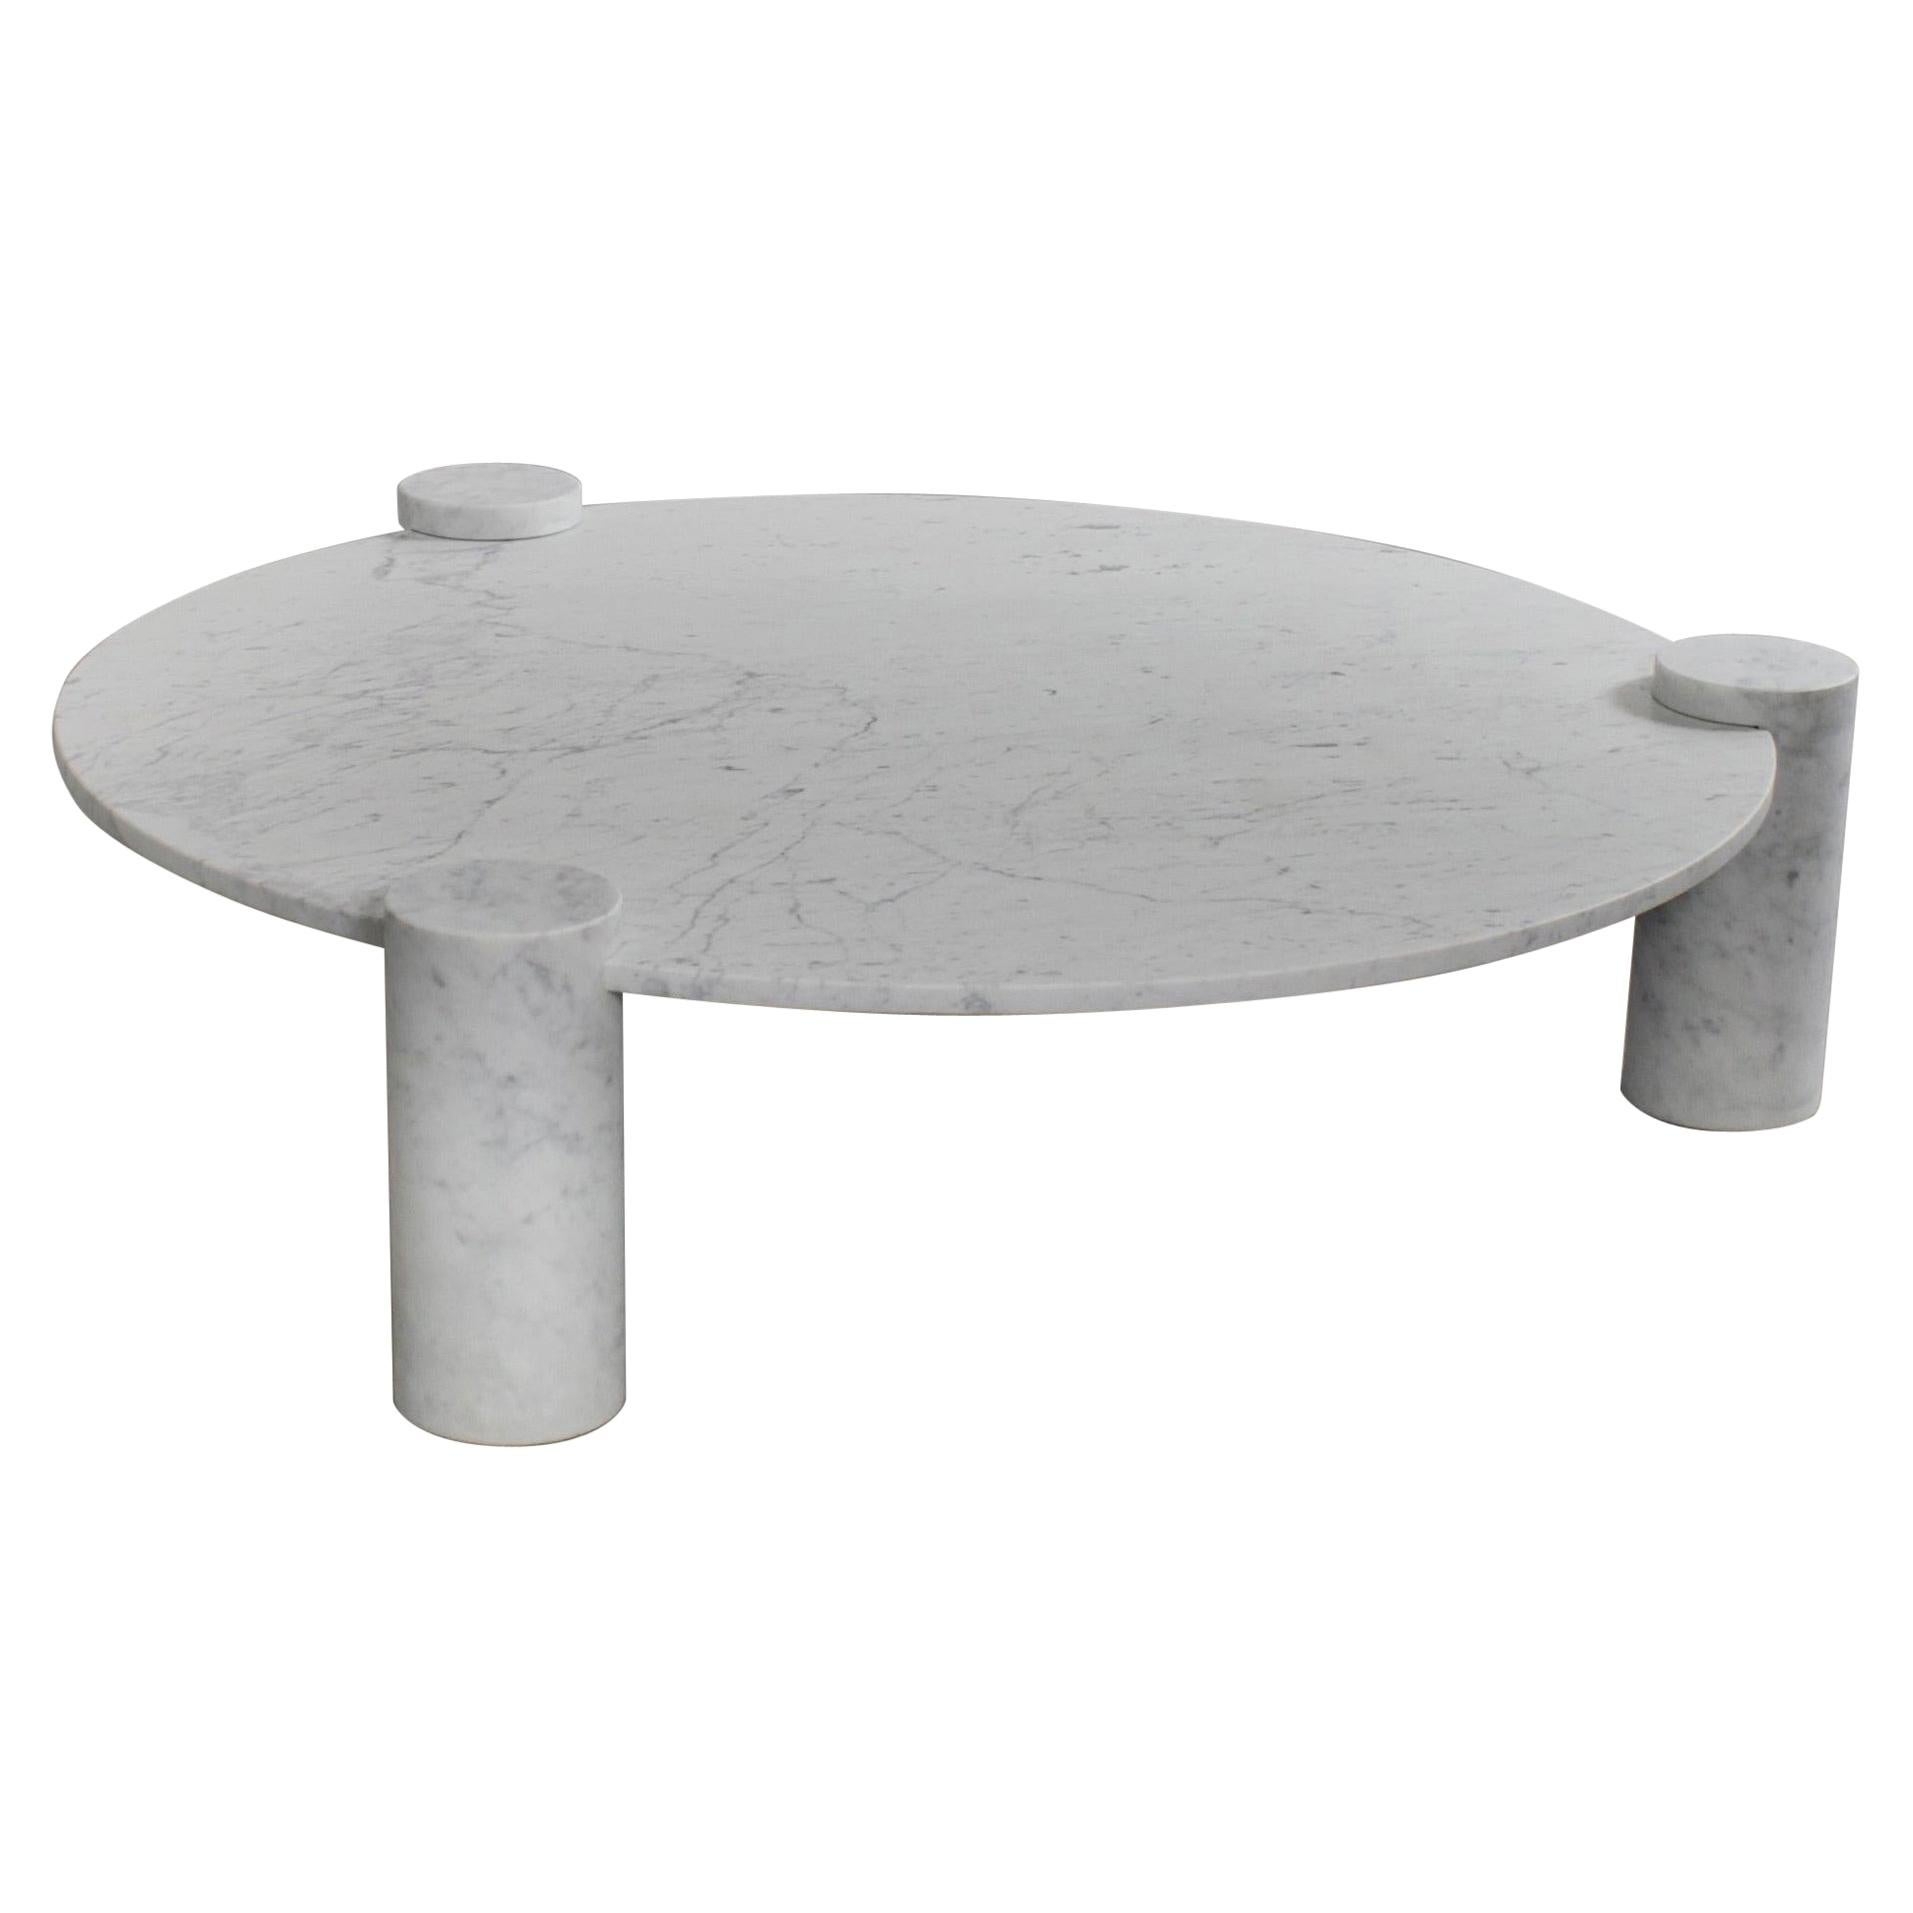 Large Impressive Carrara Marble Coffee Table Made in Italy, 1970s